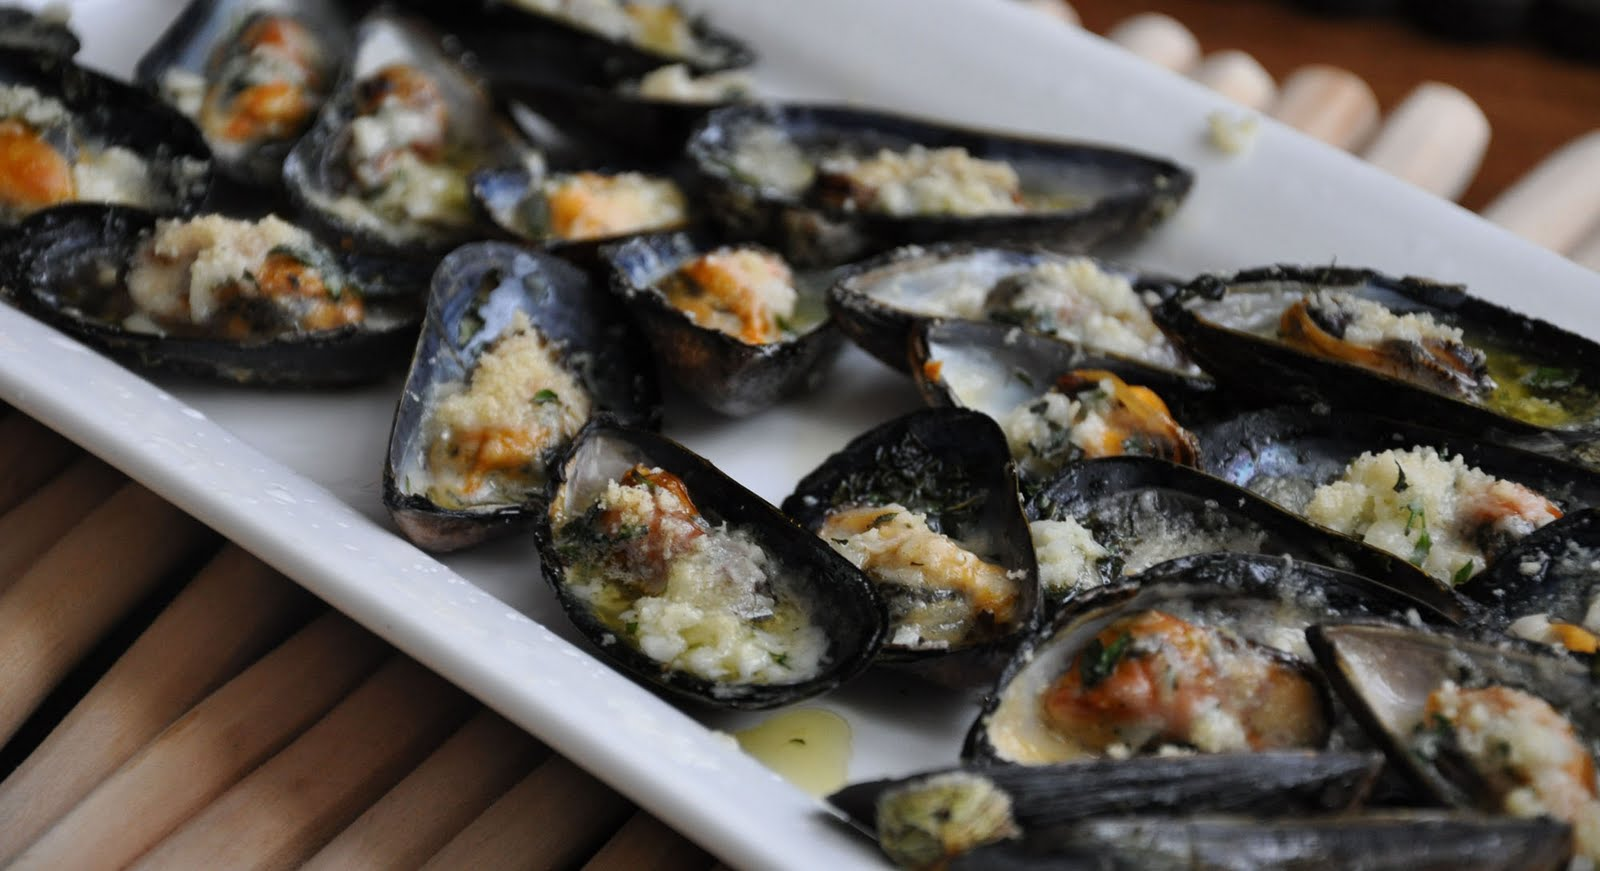 Food So Good Mall: Mussels with Parmesan and Garlic